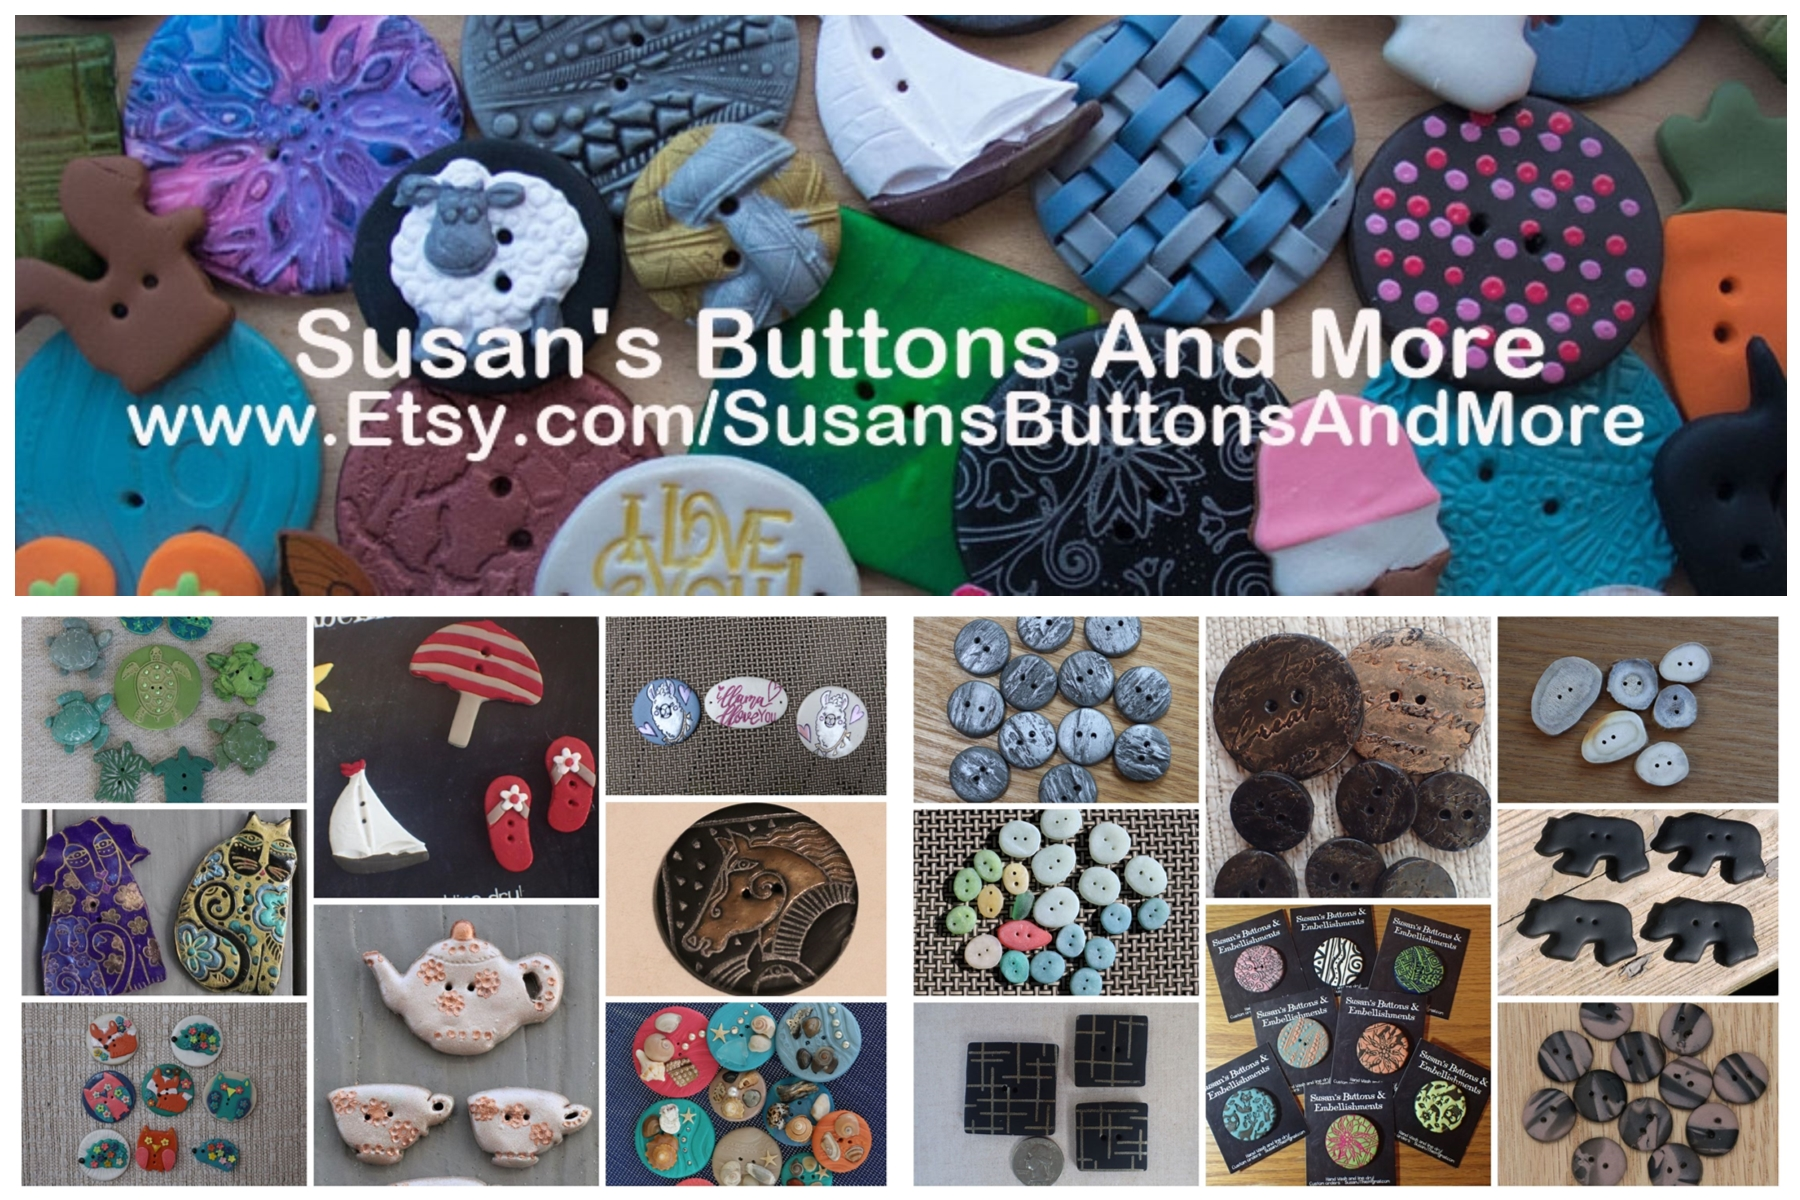 Susan's Buttons And More